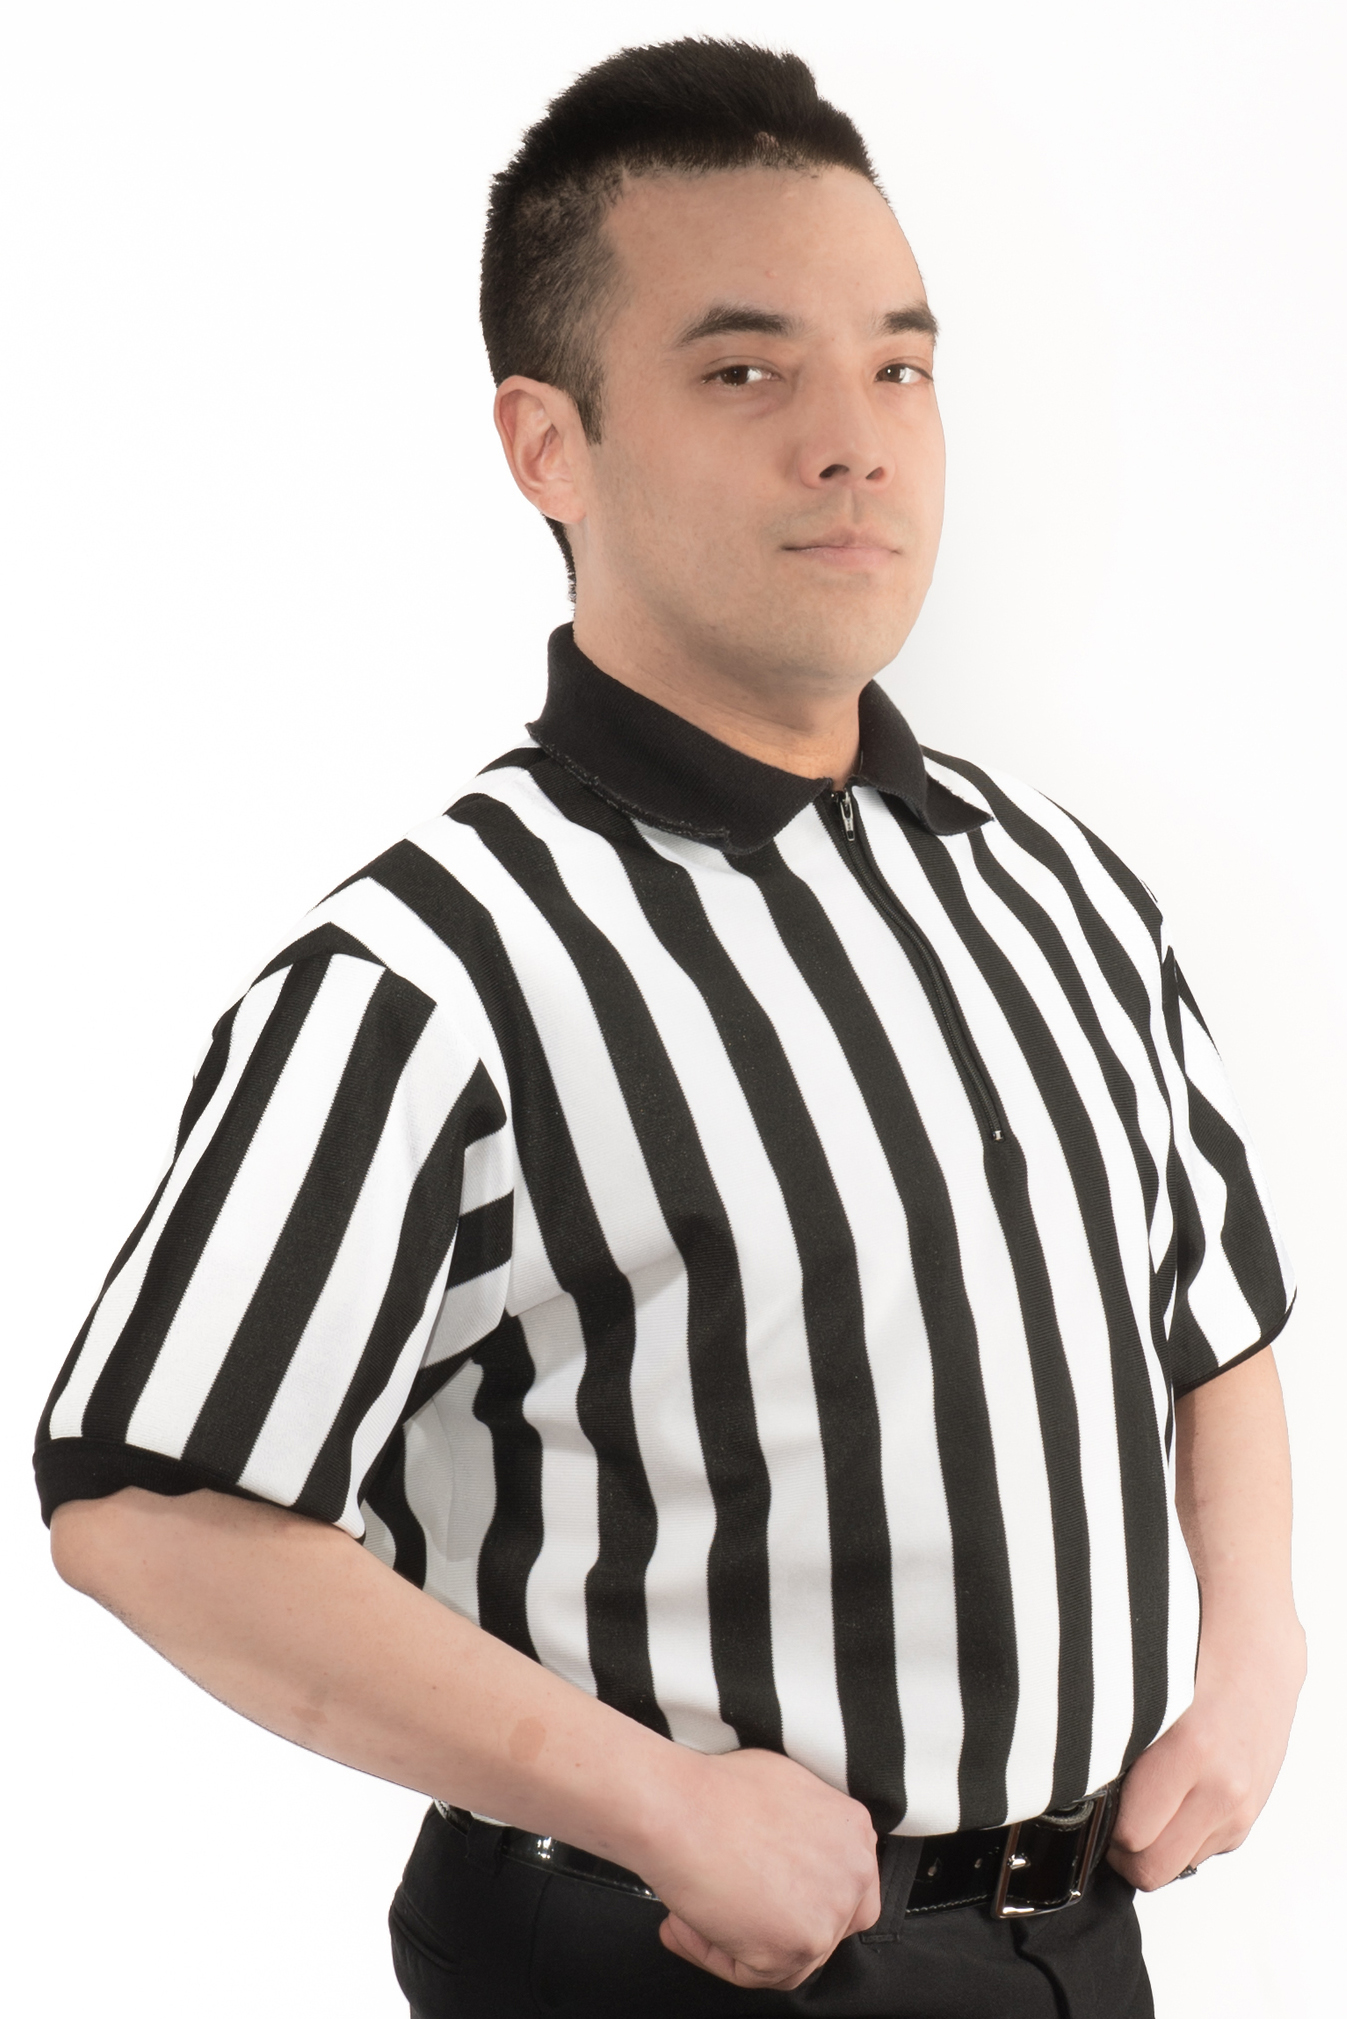 Dan Tanaka Professional Wrestling Referee